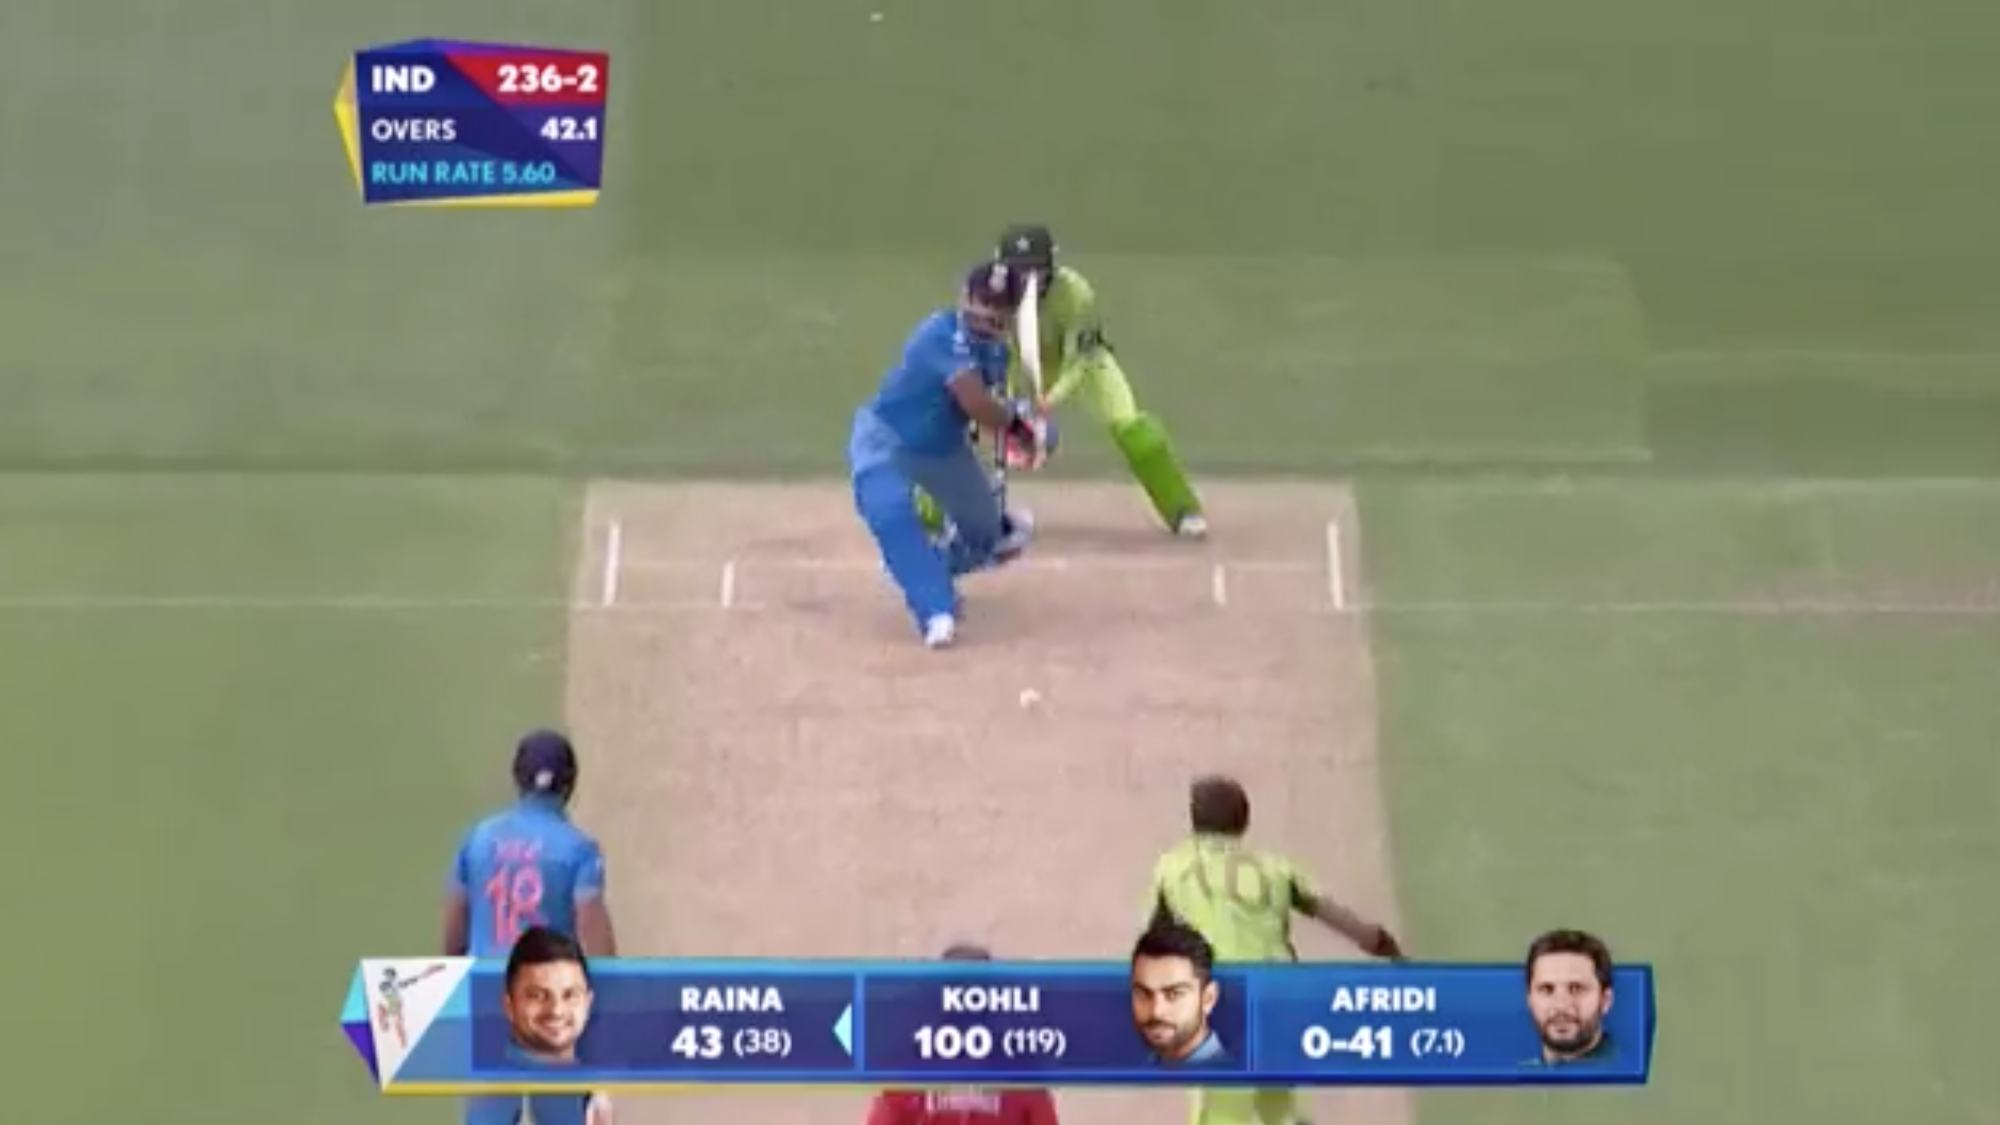 CWC15 IND vs PAK - India innings highlights